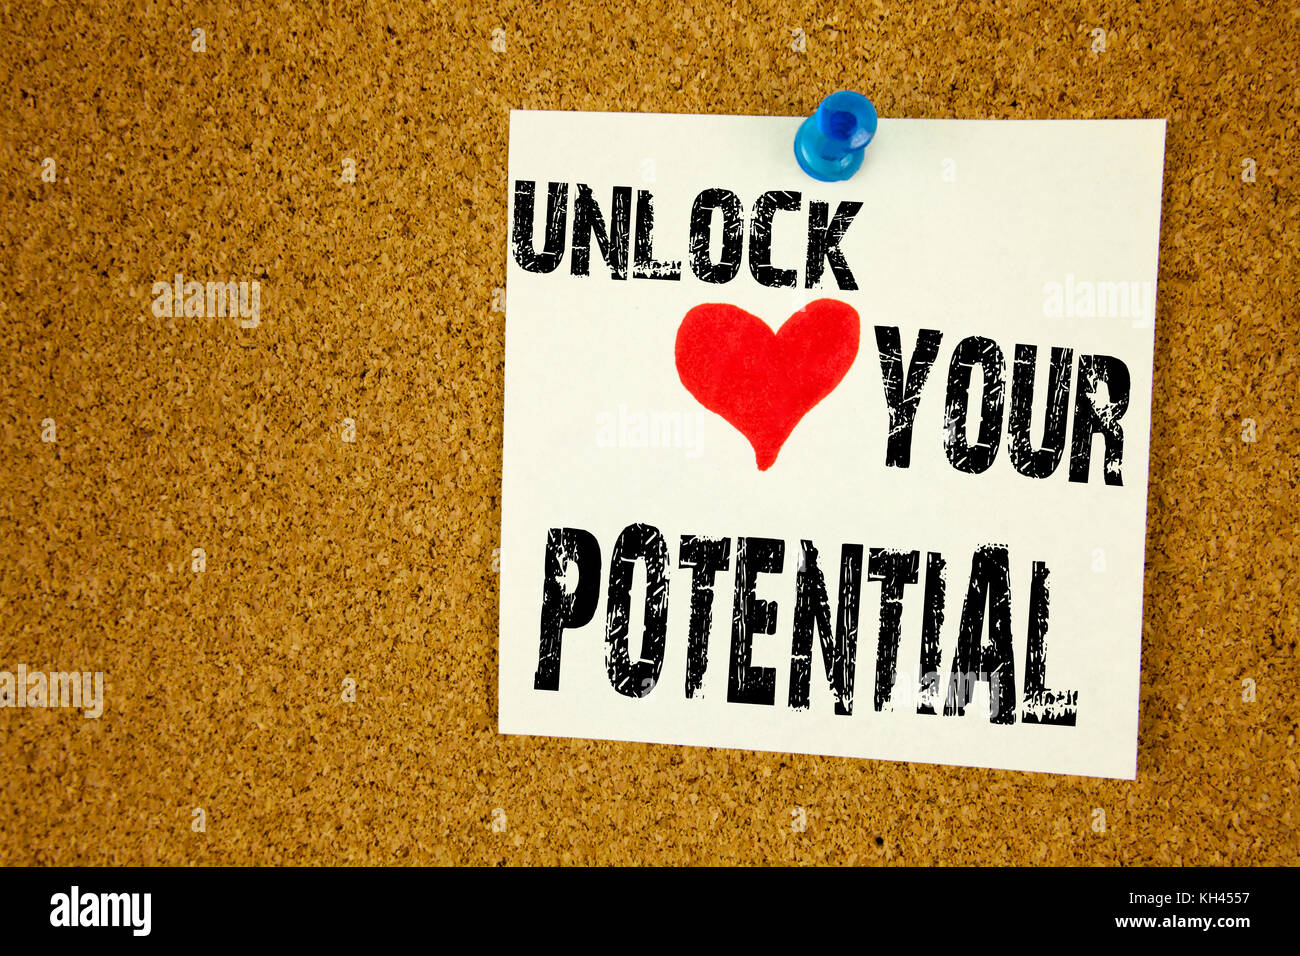 Conceptual hand writing text caption inspiration showing Unlock Your Potential. Business concept for Growth and - Stock Image